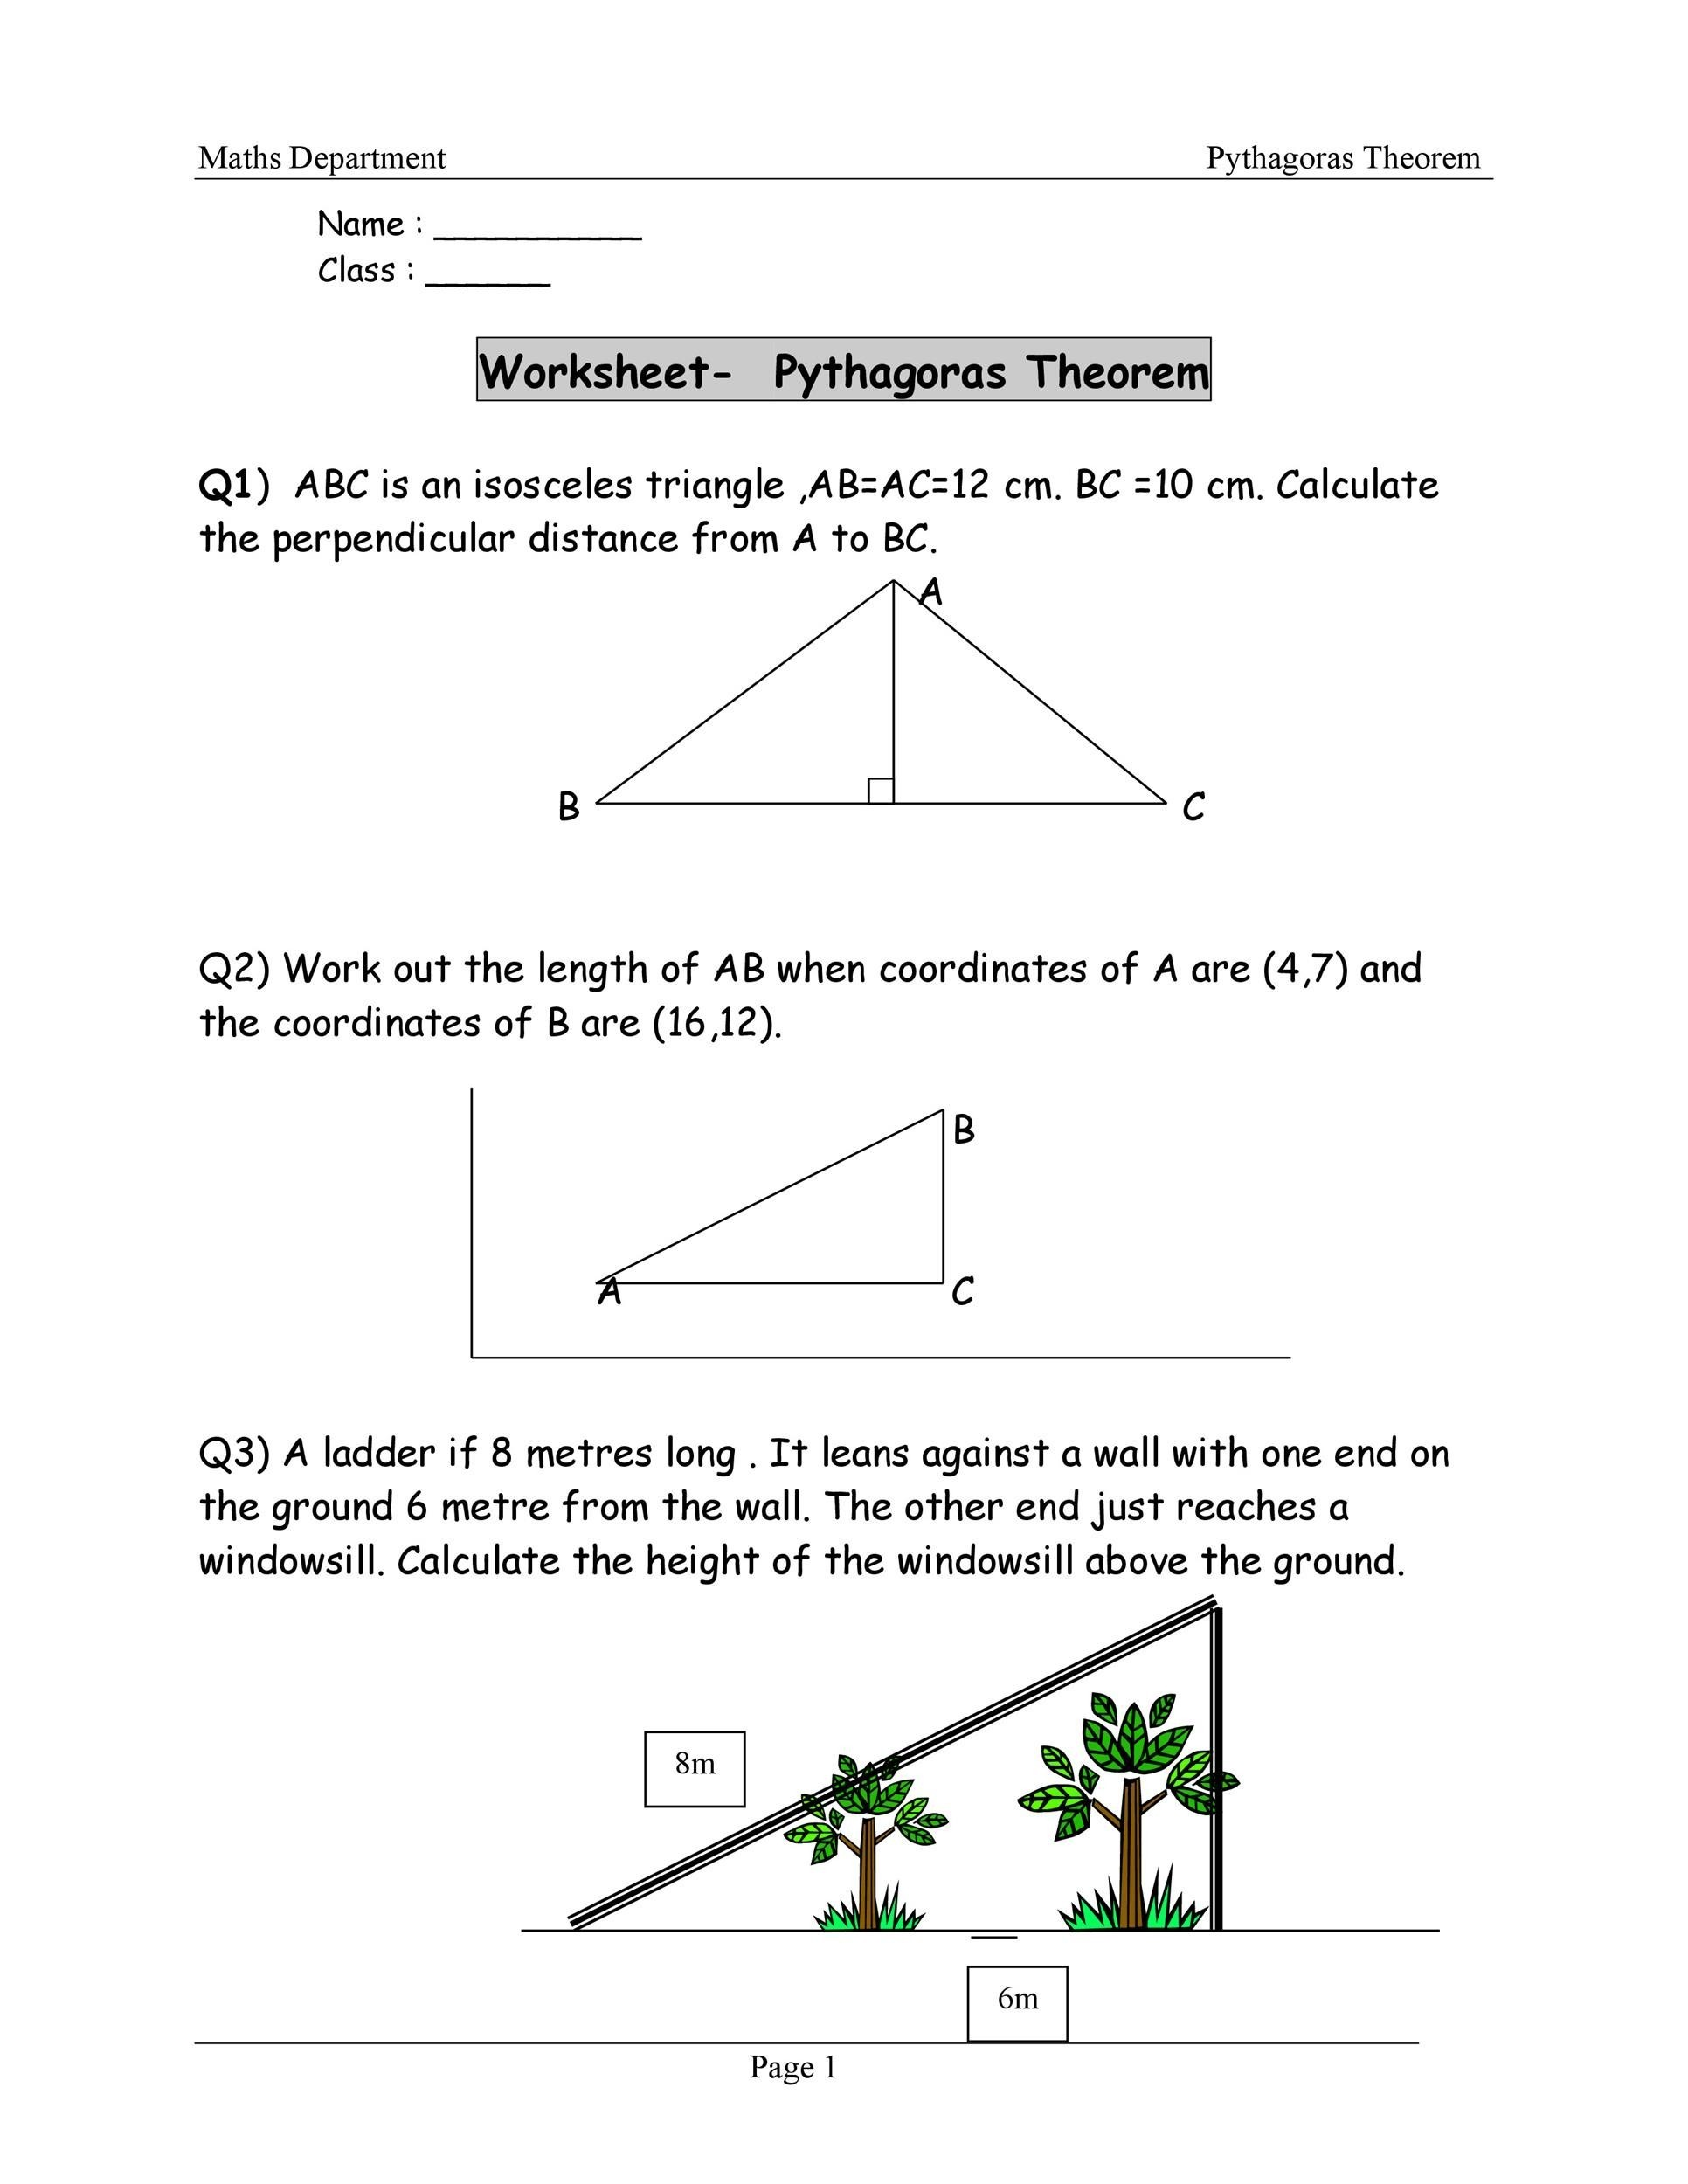 Worksheets Pythagorean Theorem Worksheet 8th Grade pythagorean theorem word problem worksheet free worksheets library pythagoras questions